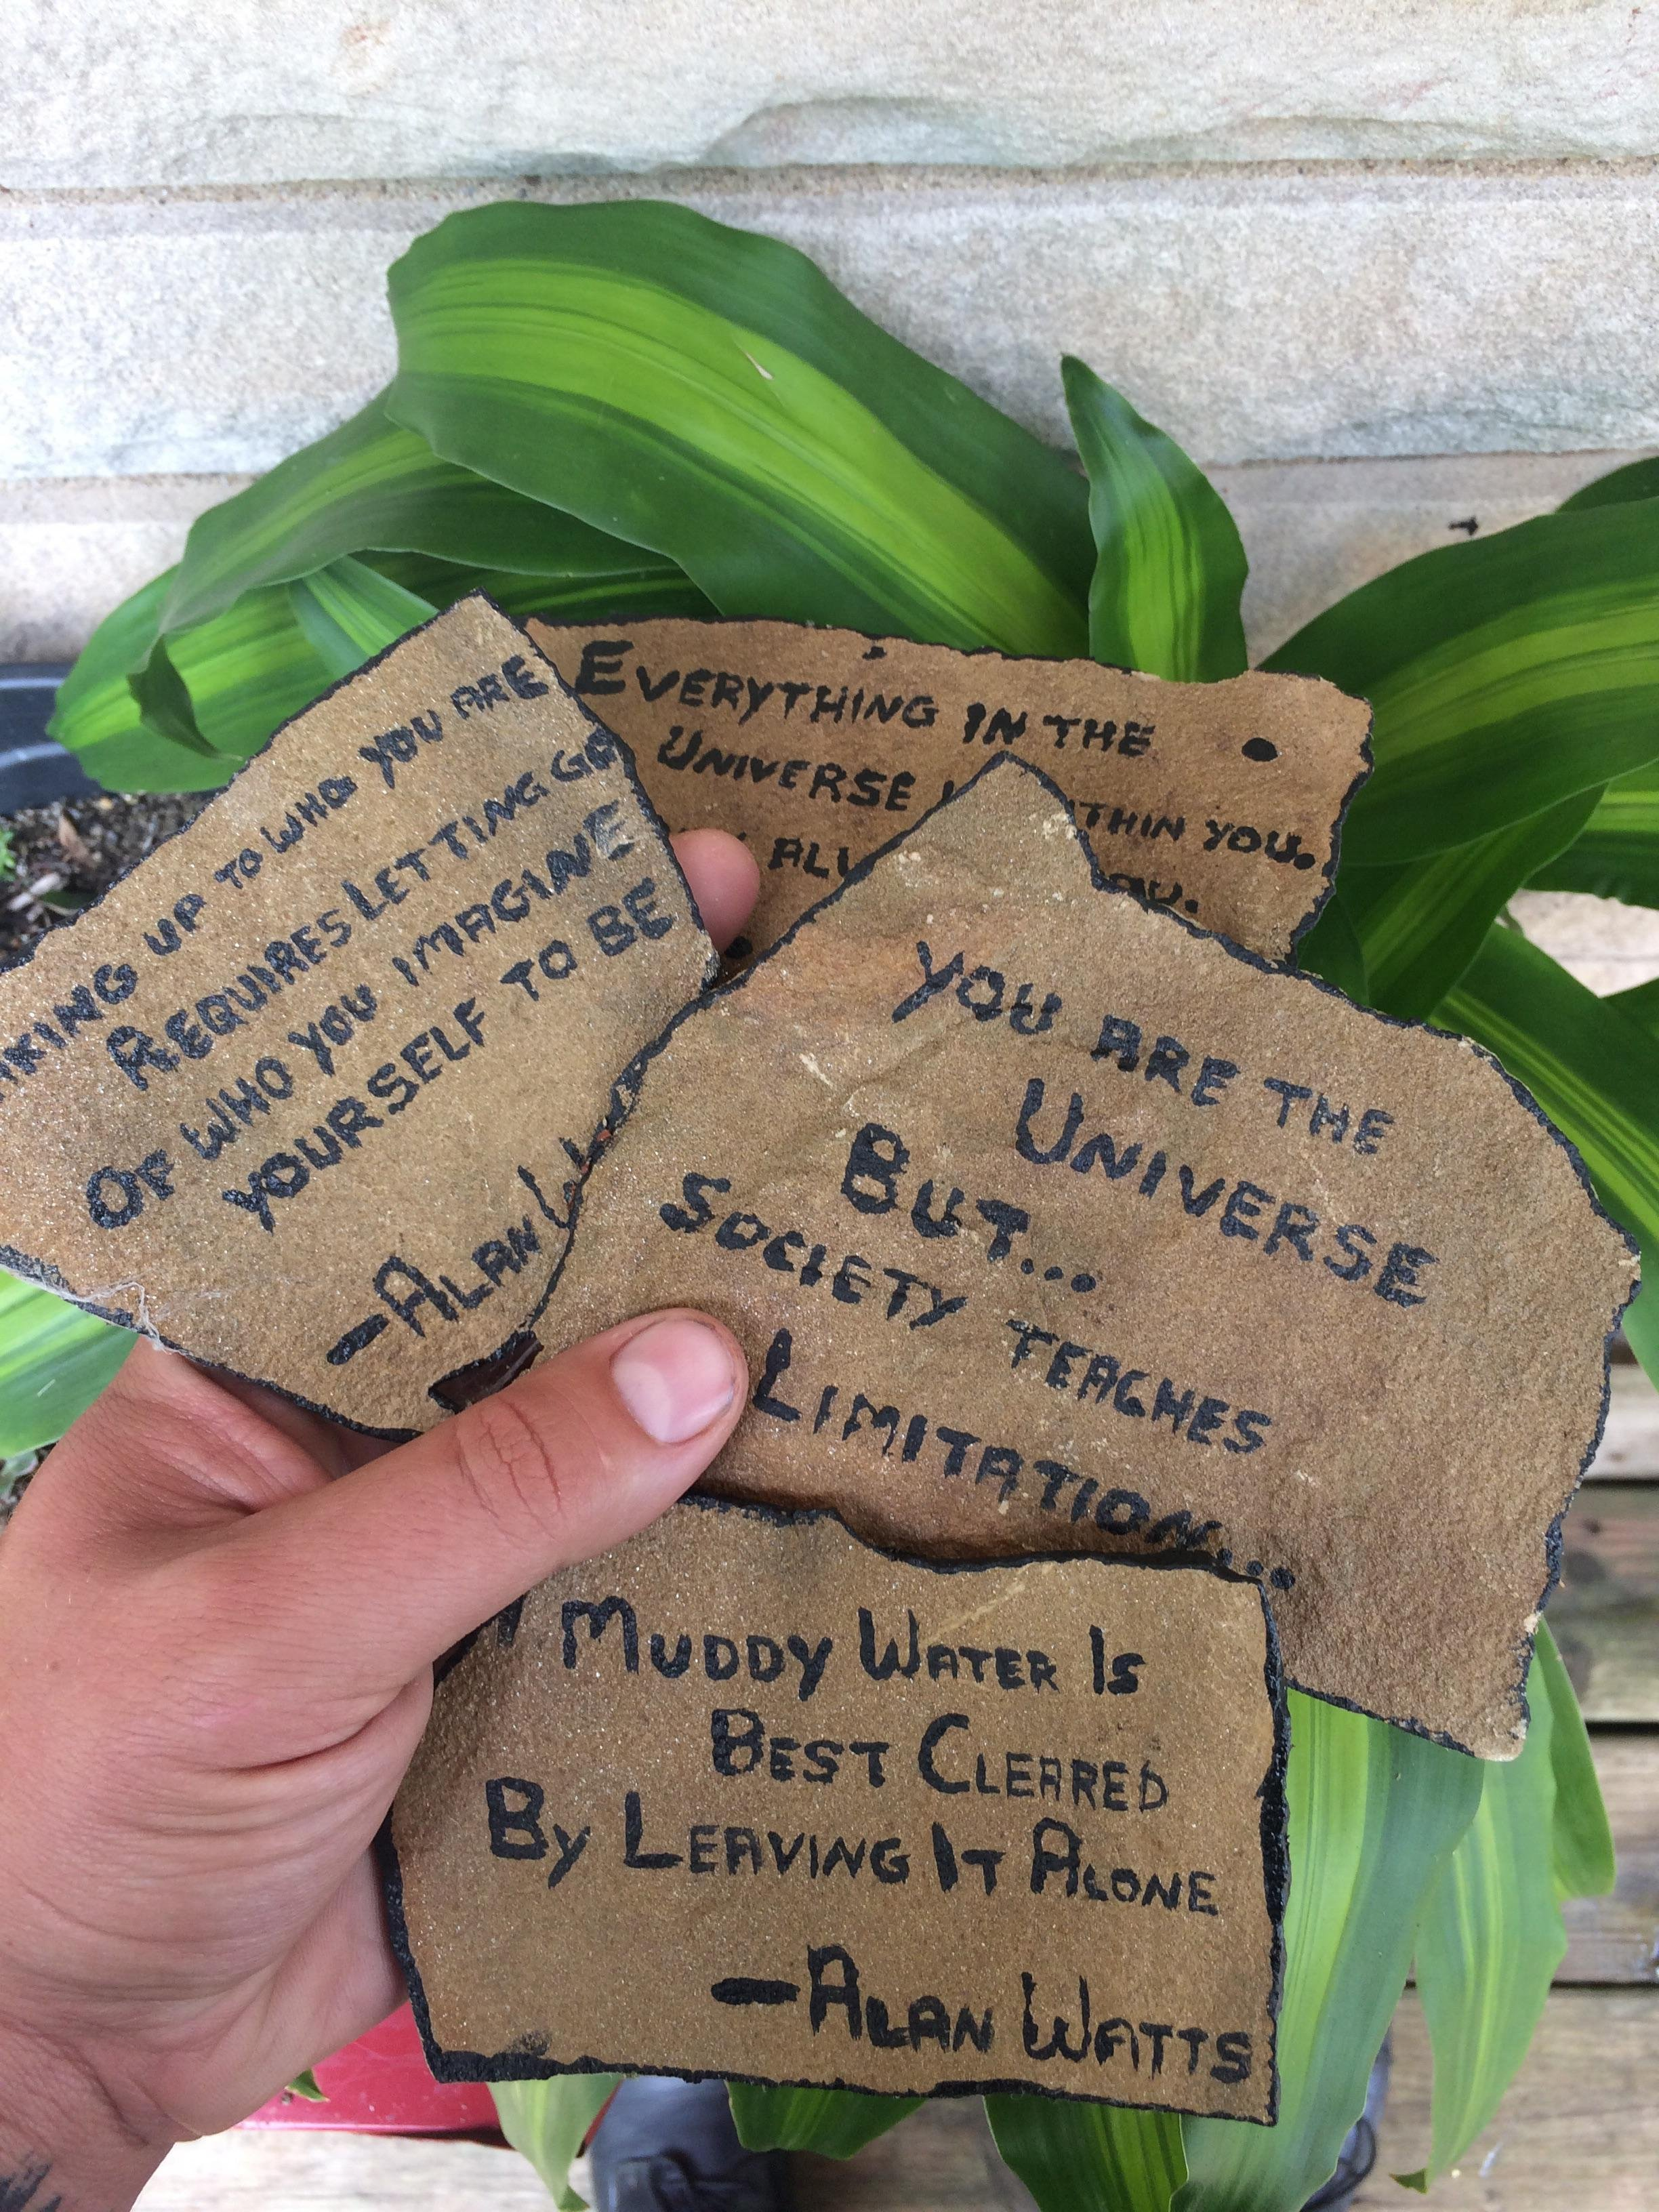 Lots of people paint rocks around here; I paint motivational quote slabs for people to find! Gimme your best motivational quotes for me to paint.